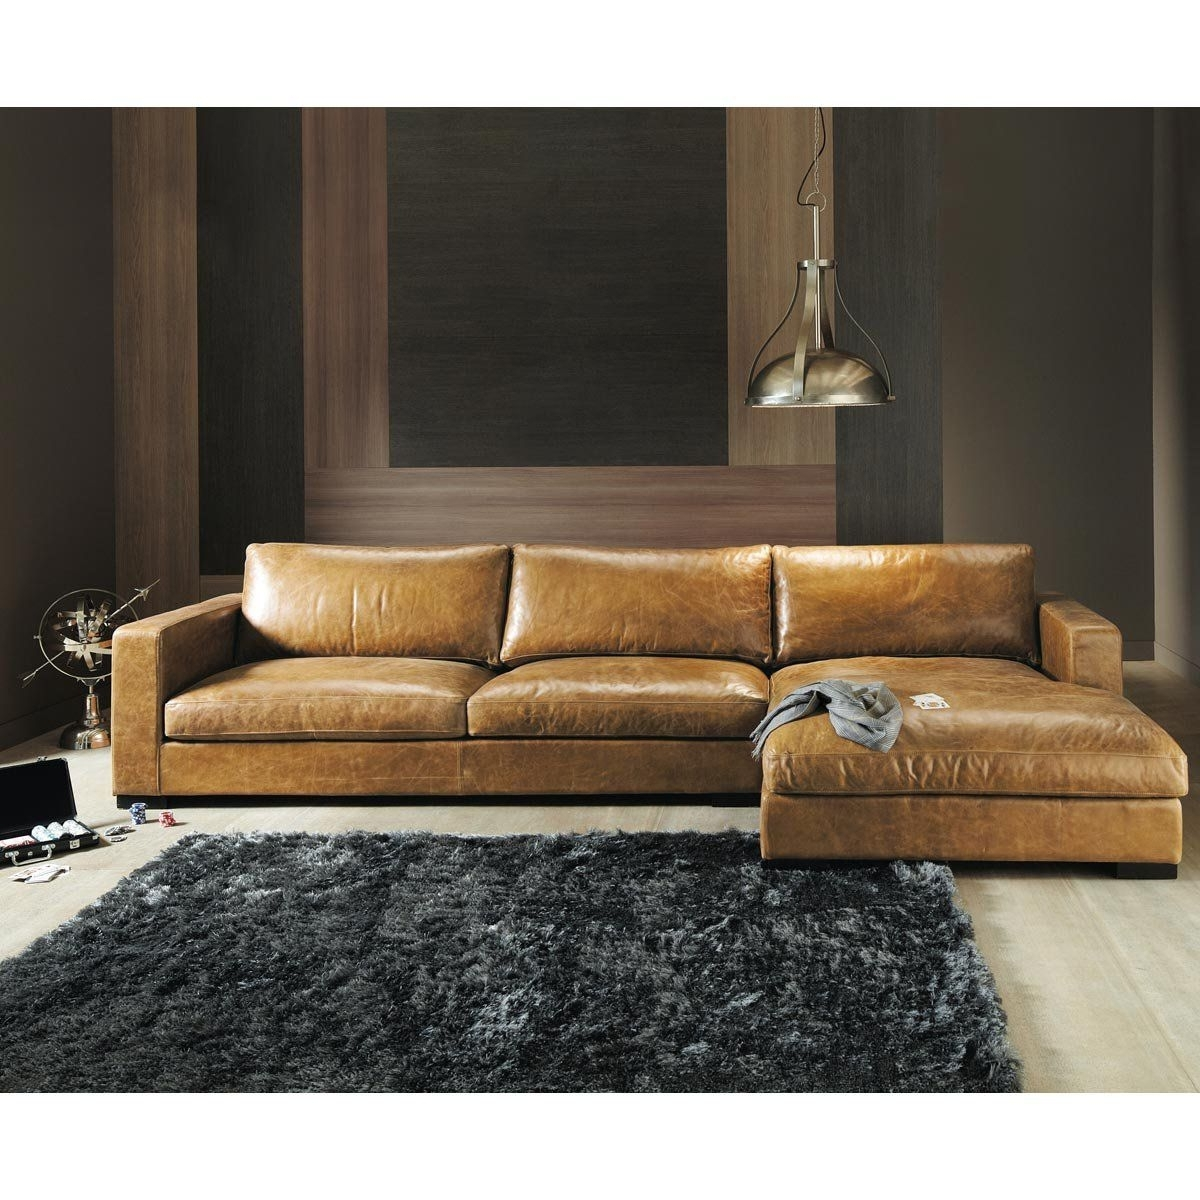 Sofa Seats, Leather In Most Current Camel Colored Sectional Sofas (View 13 of 15)